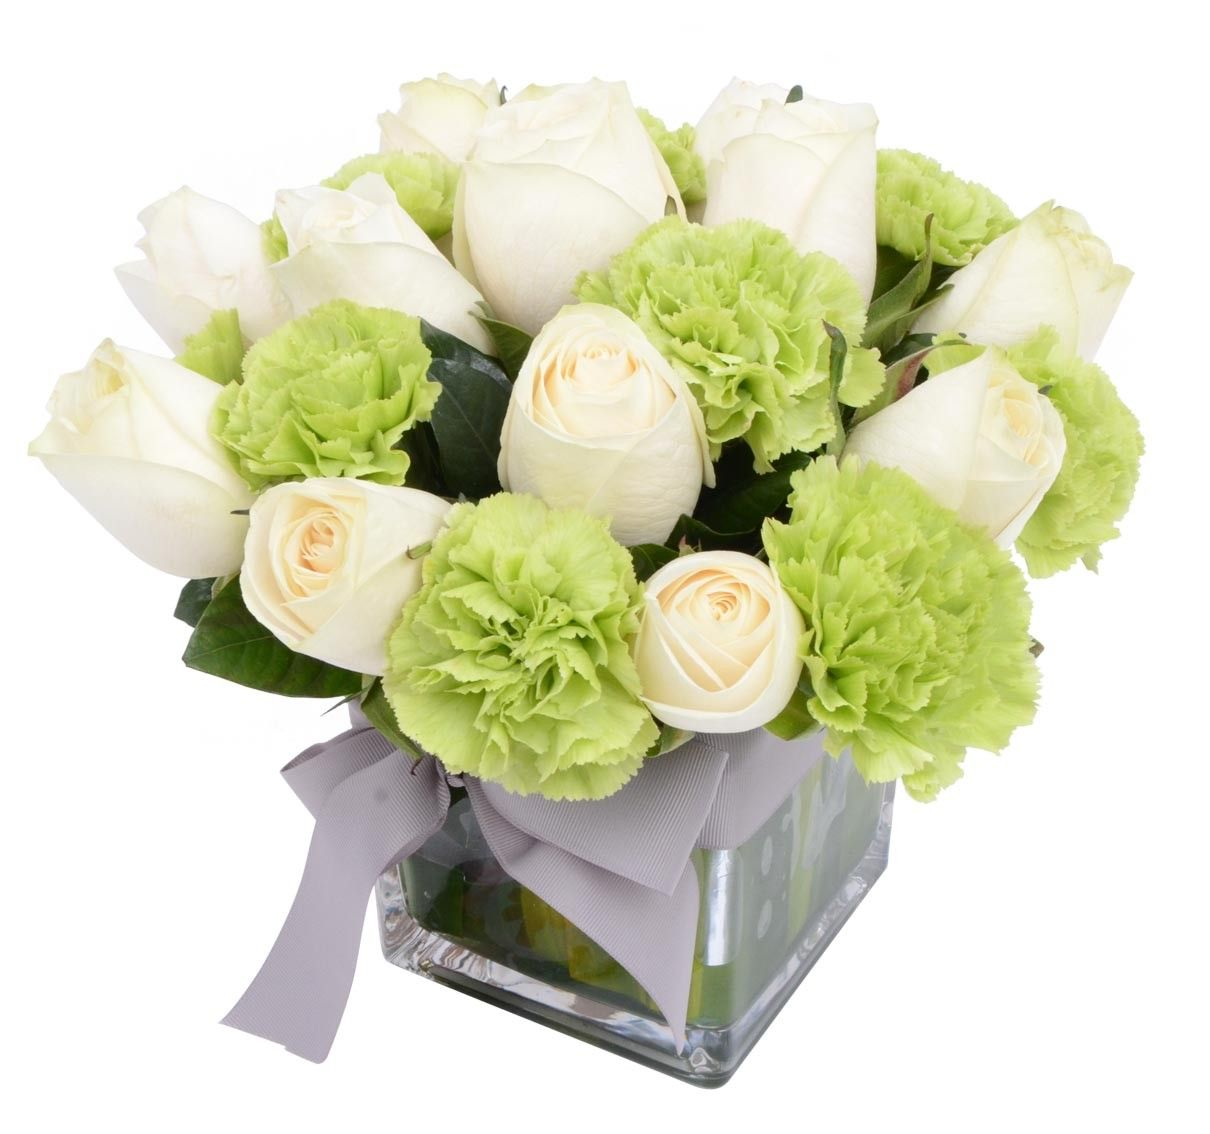 flowers free idea bouquets awesome with decorations ideas delivery of vases vase in design a valentinesi bouquet